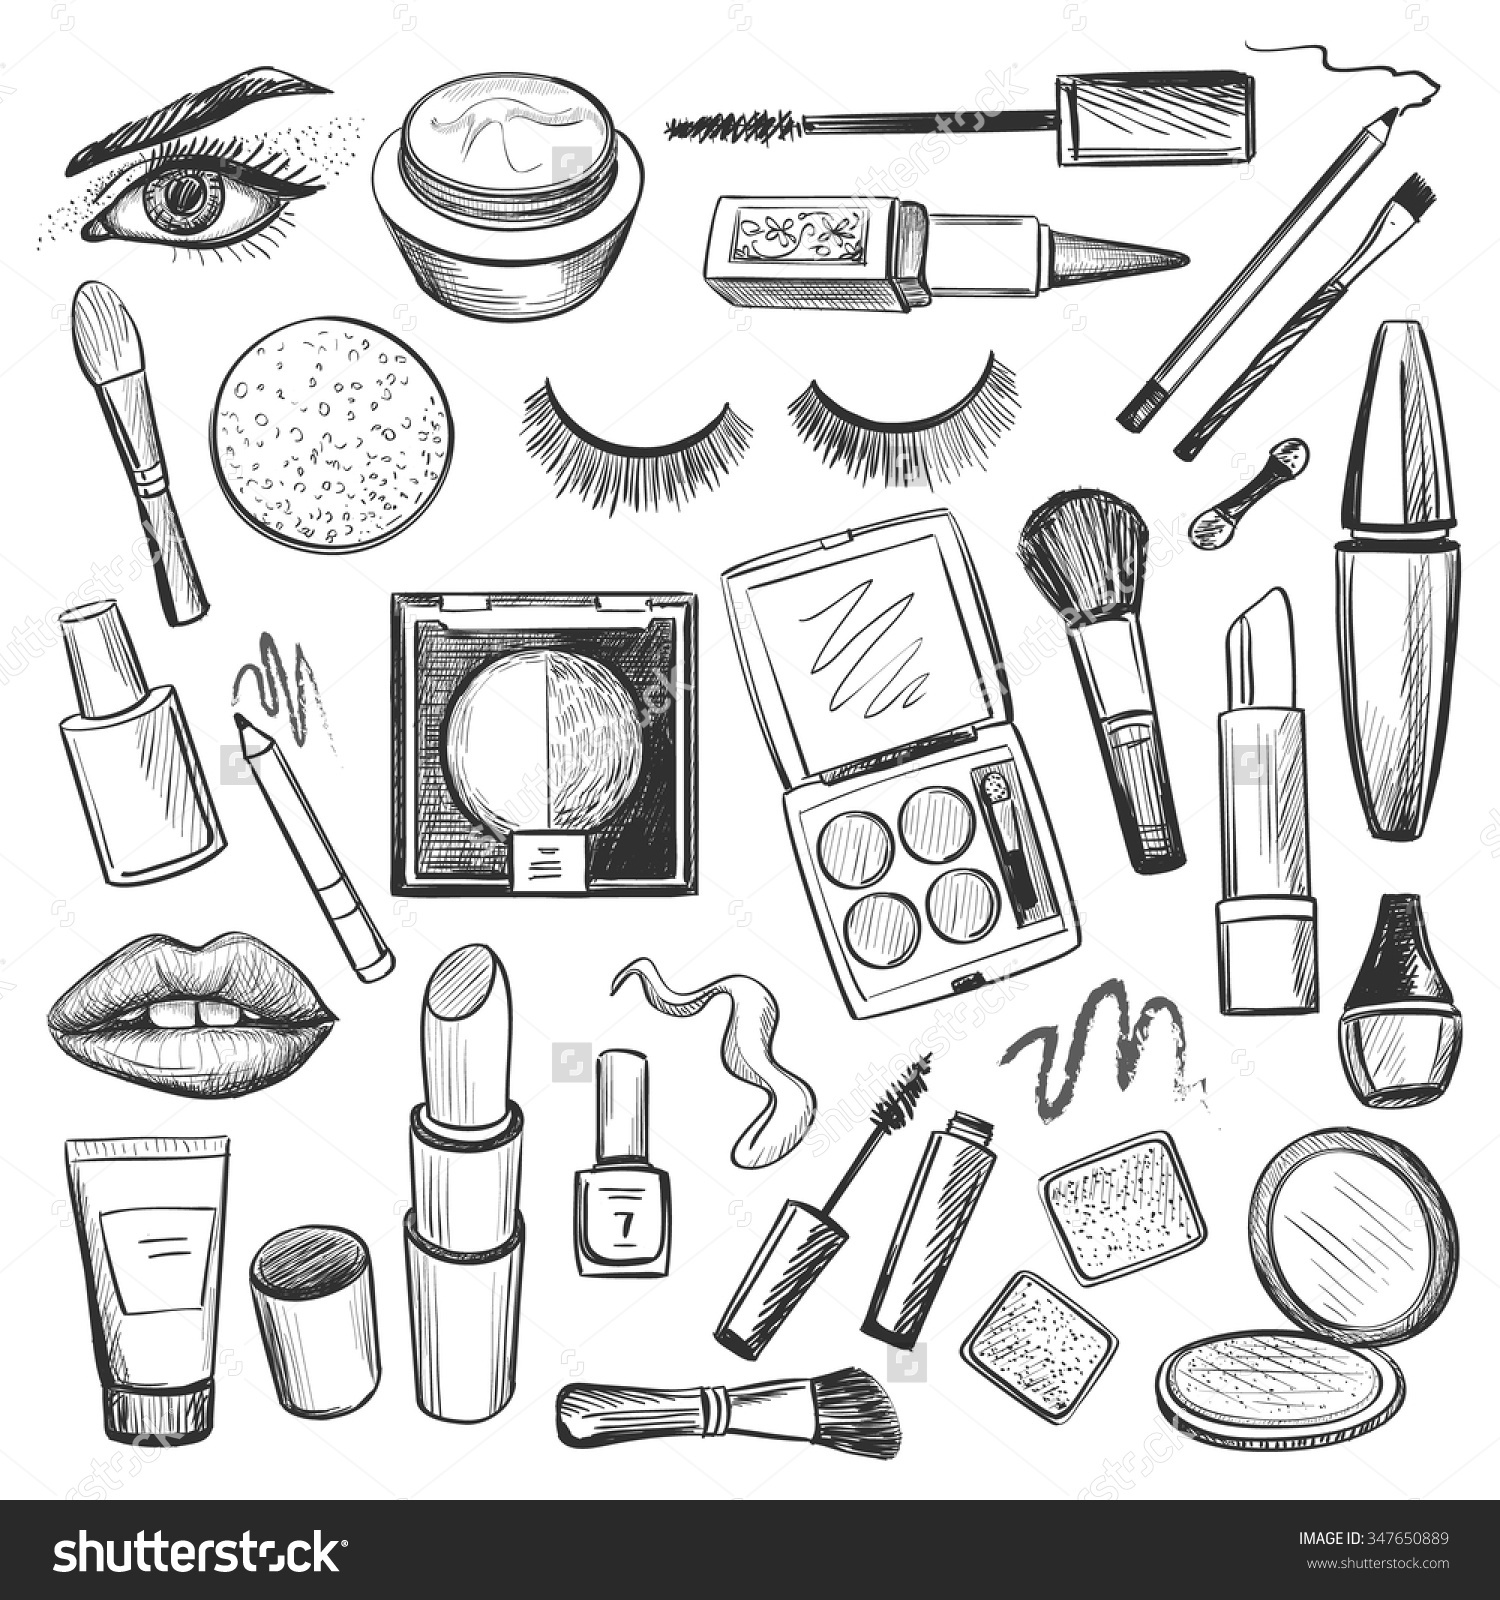 Free Makeup Clipart Black And White, Download Free Clip Art.